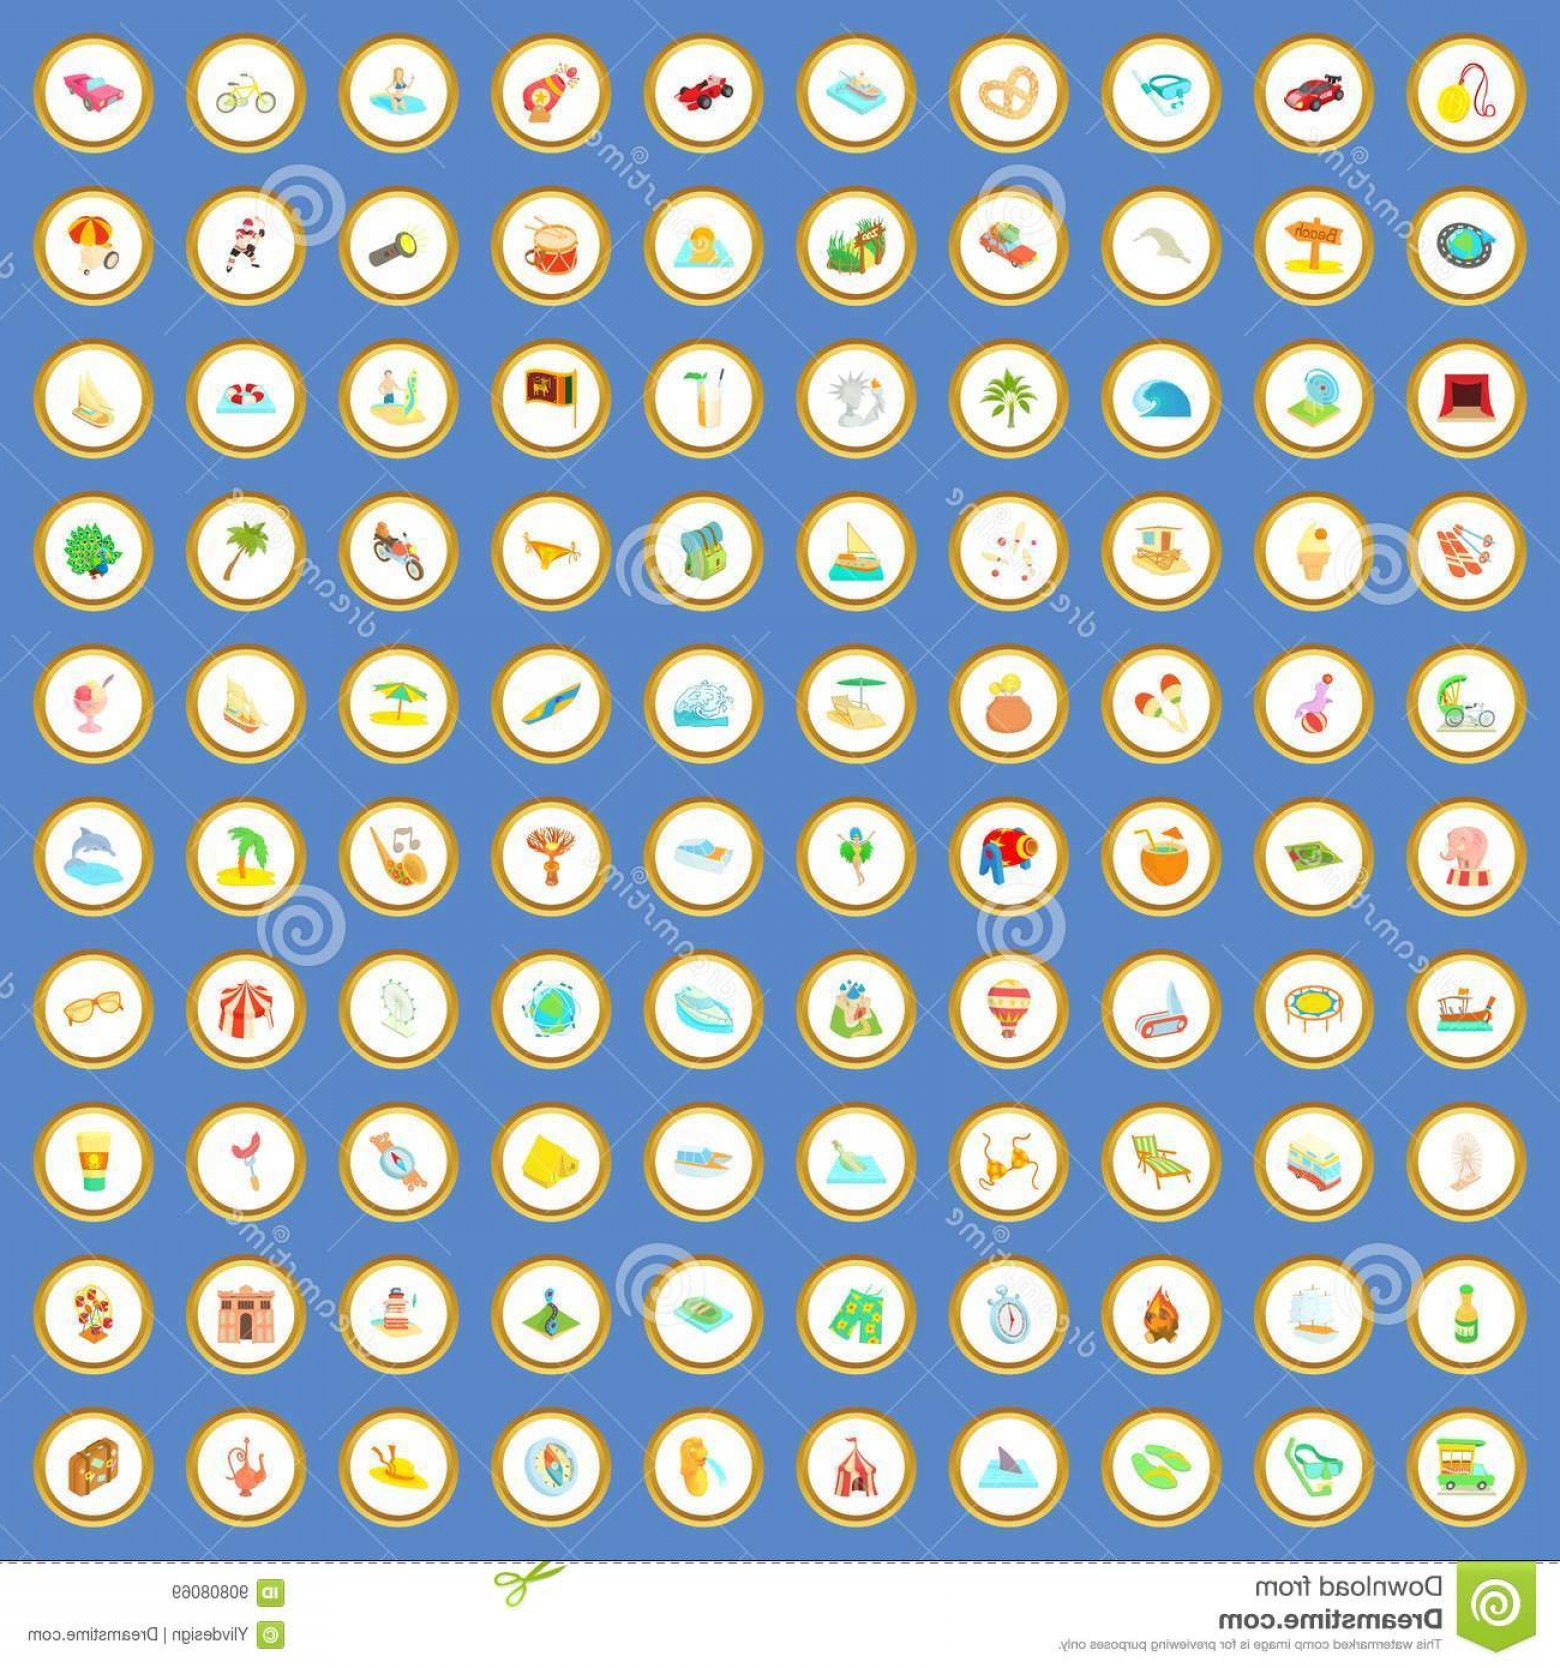 Adventure Time Vector: Stock Illustration Adventure Time Icons Set Cartoon Vector Circle Blue Background Style Illustration Image